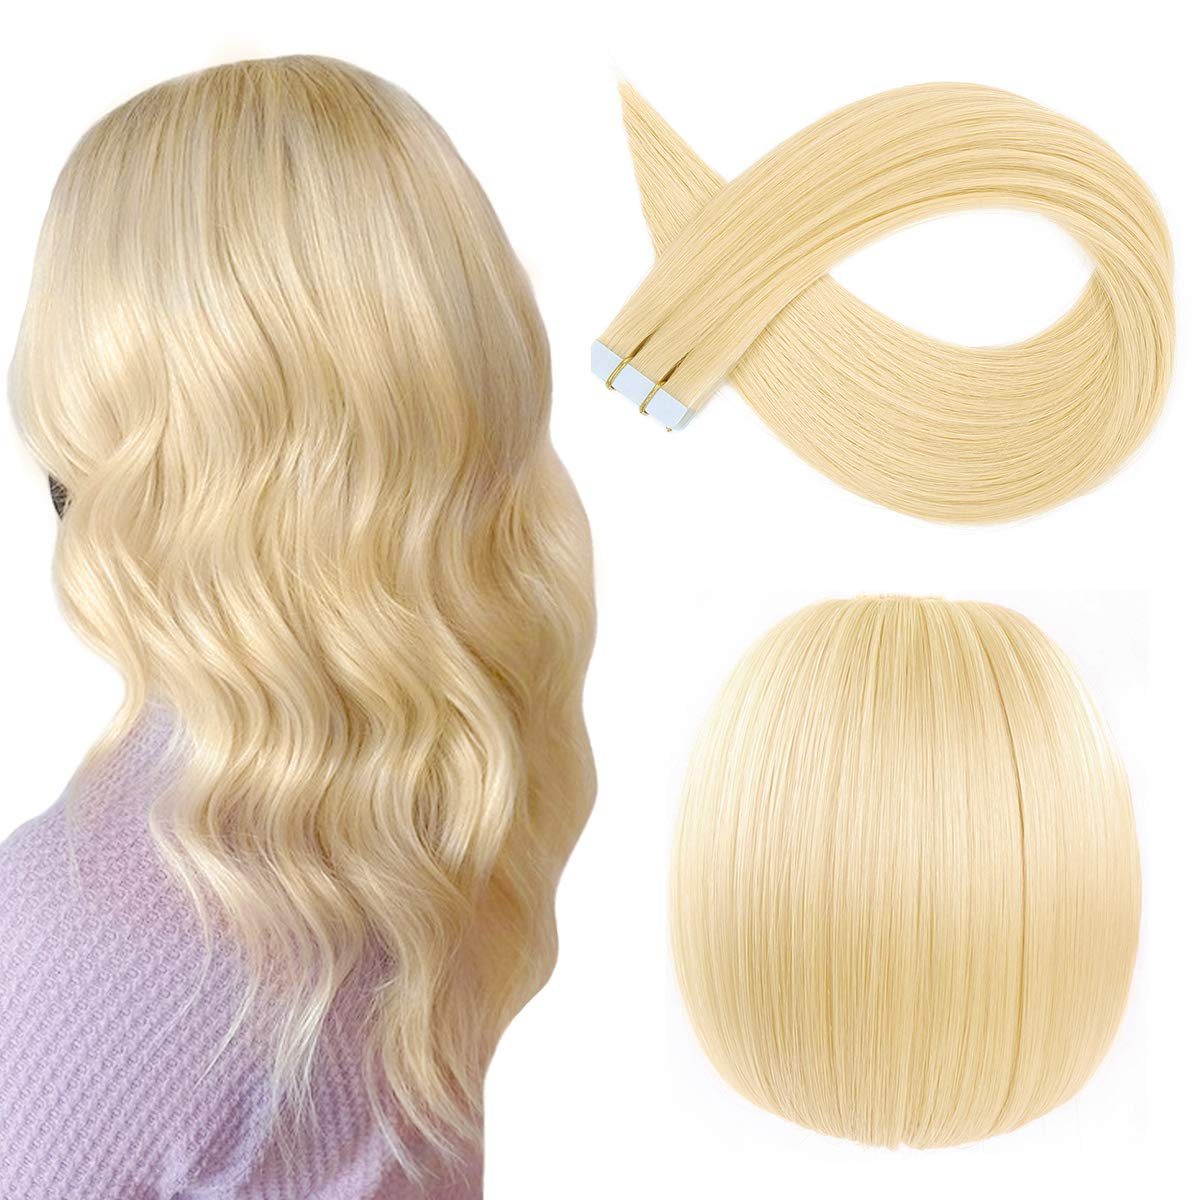 Sunya Hair Extensions Tape in Silky Human Albuquerque Mall 5 popular inches Straigh 14